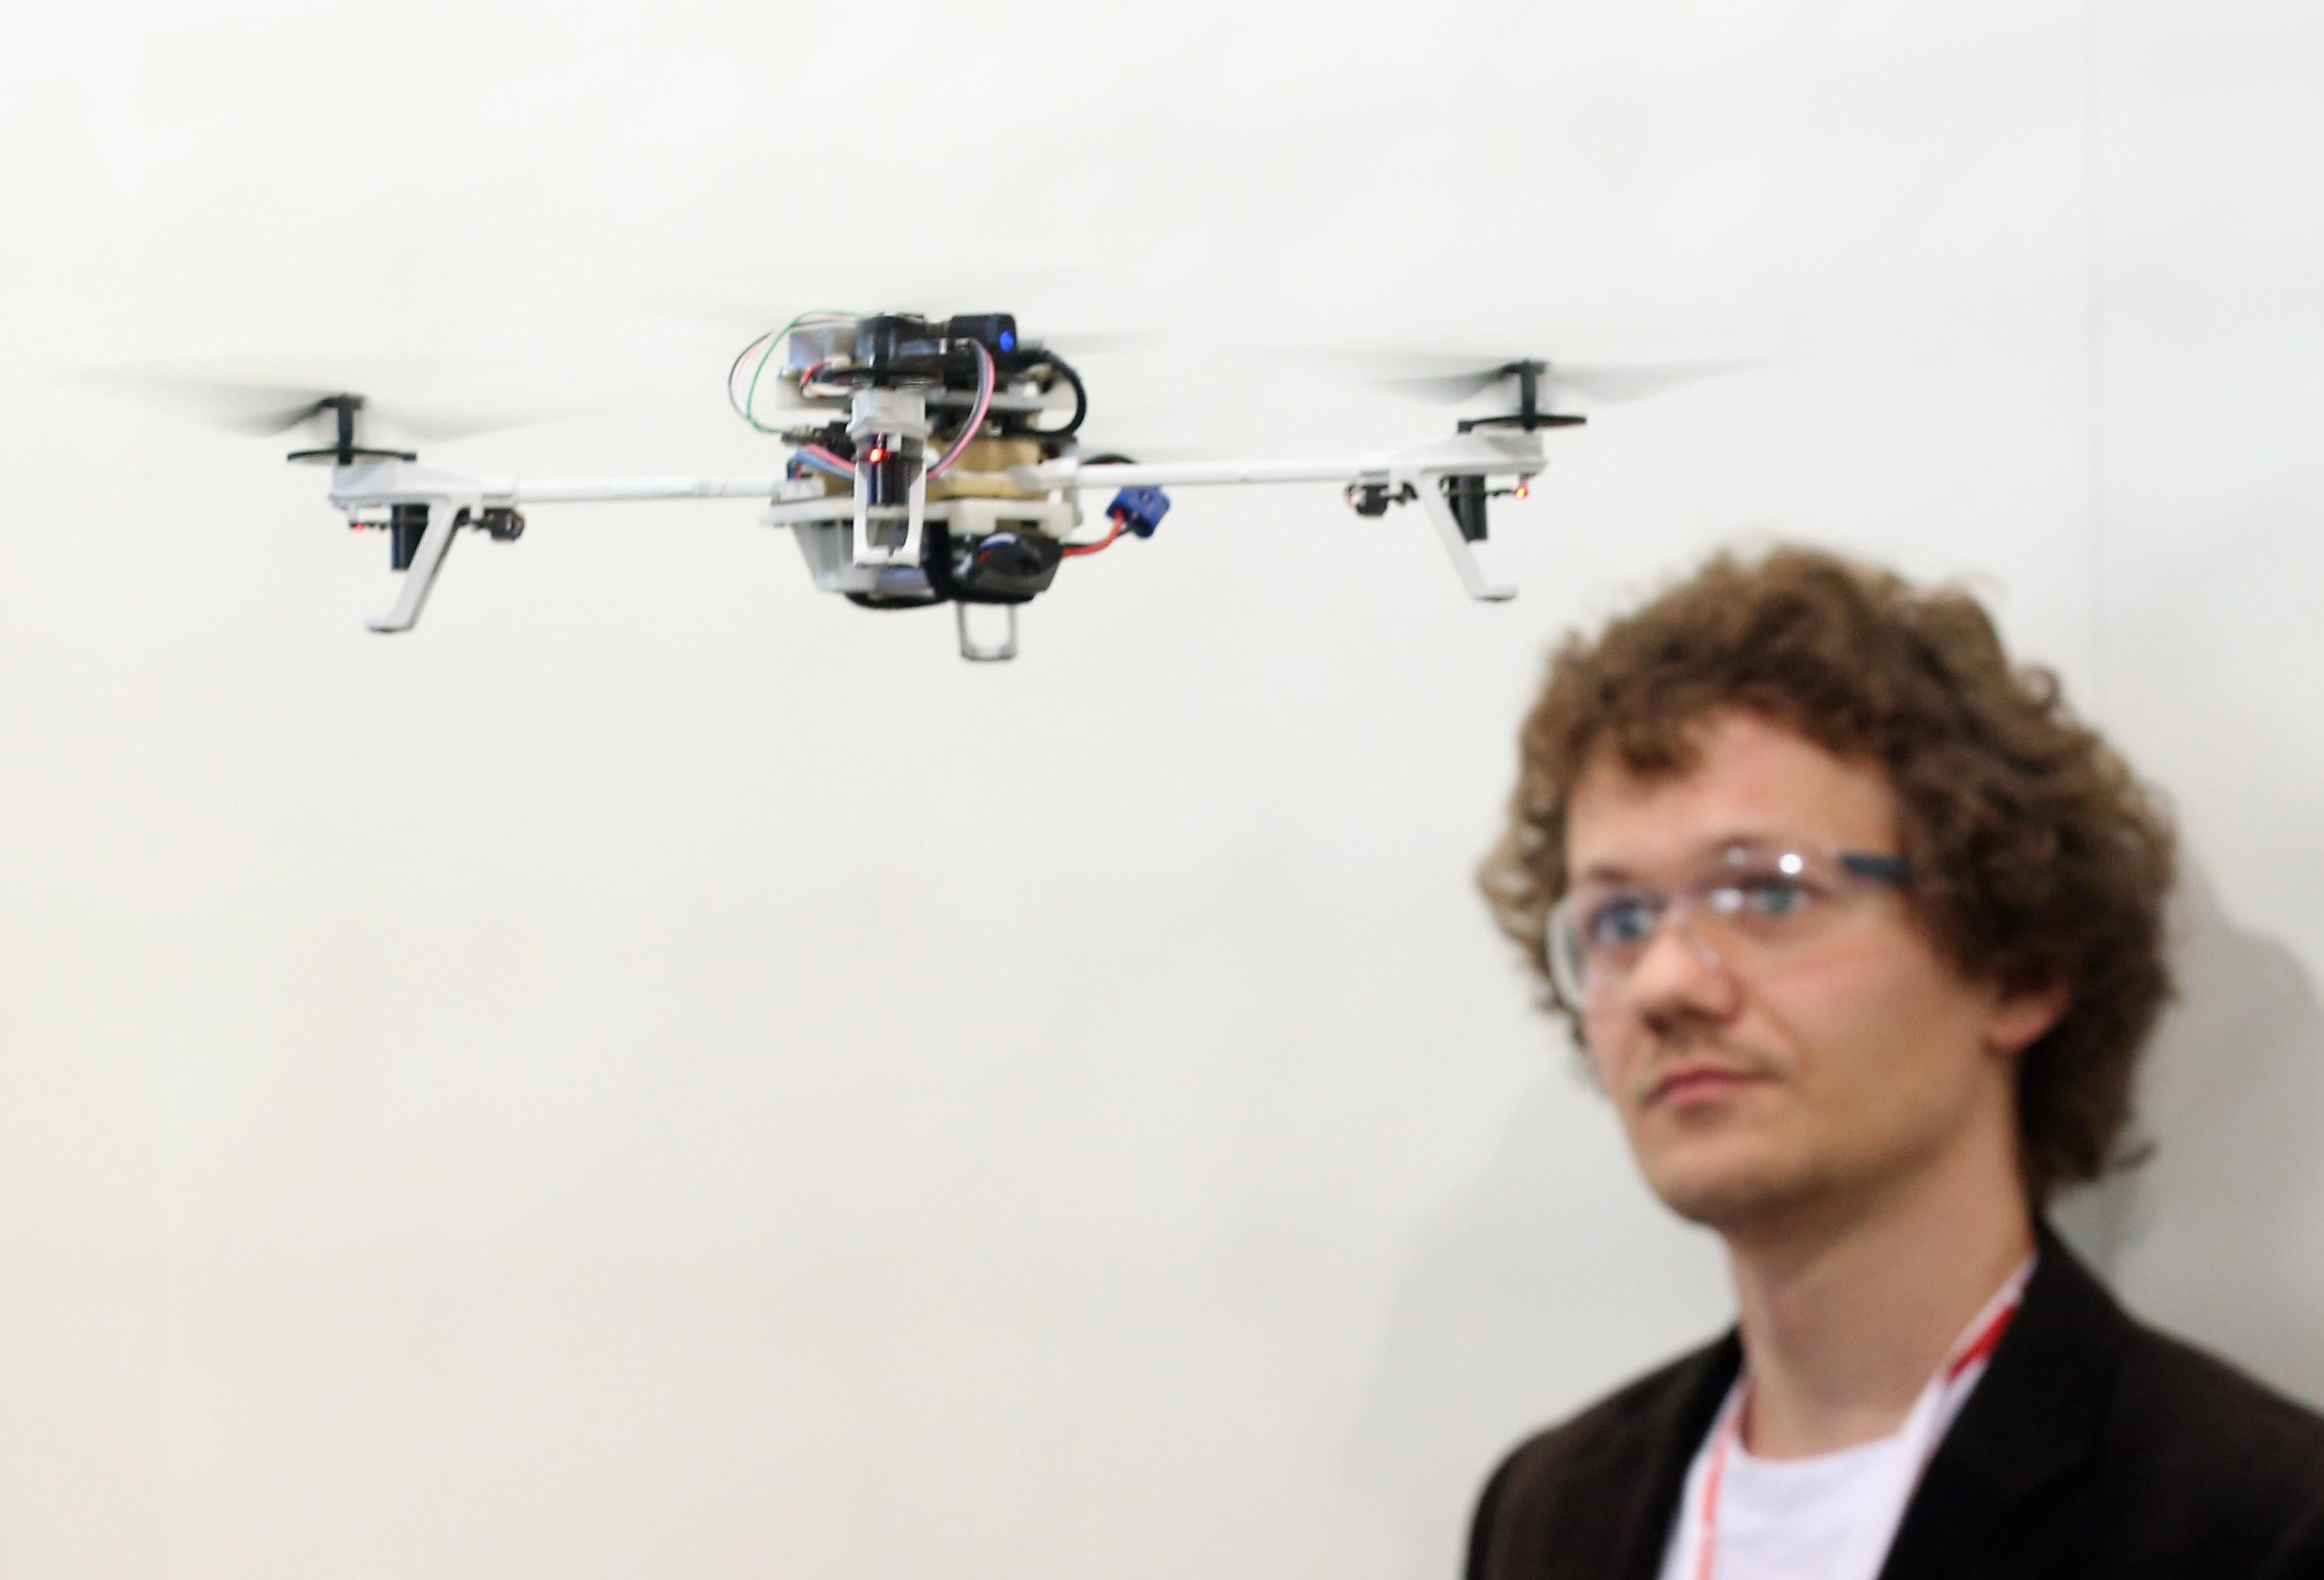 A student from the University of Zurich watches a drone.